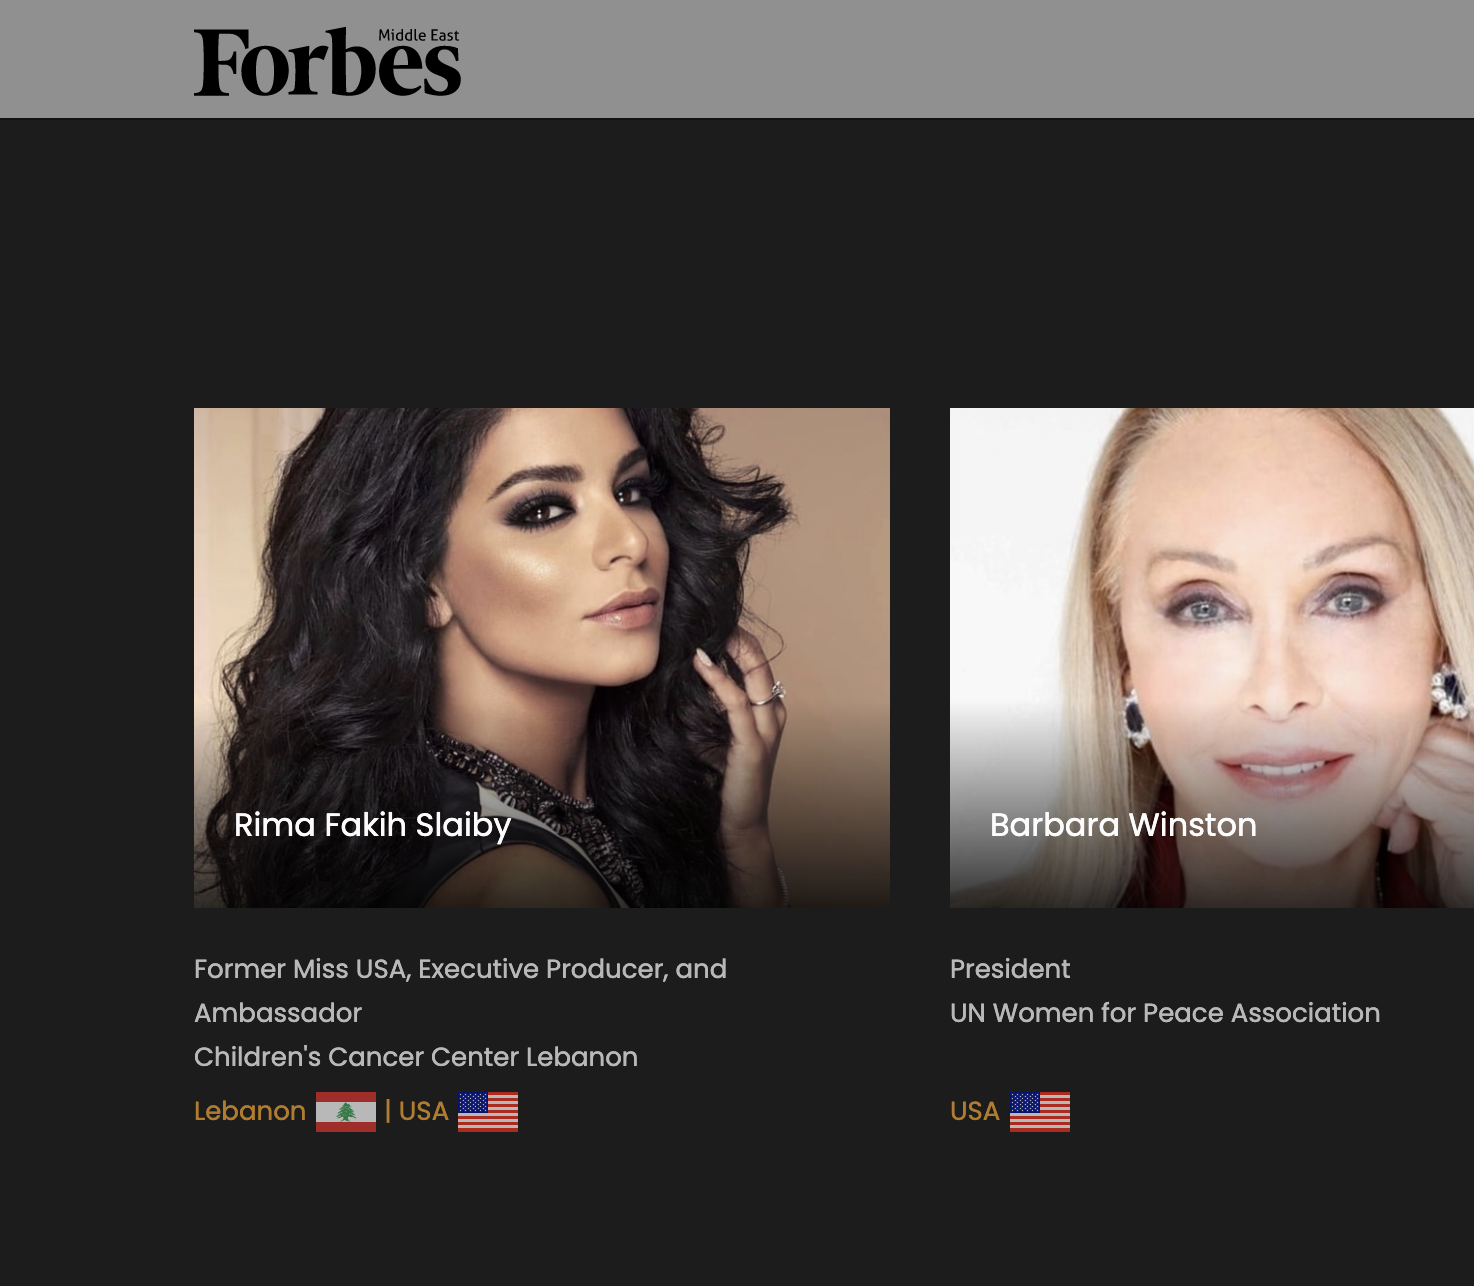 Forbes Middle East: Women in philanthropy and charitable care